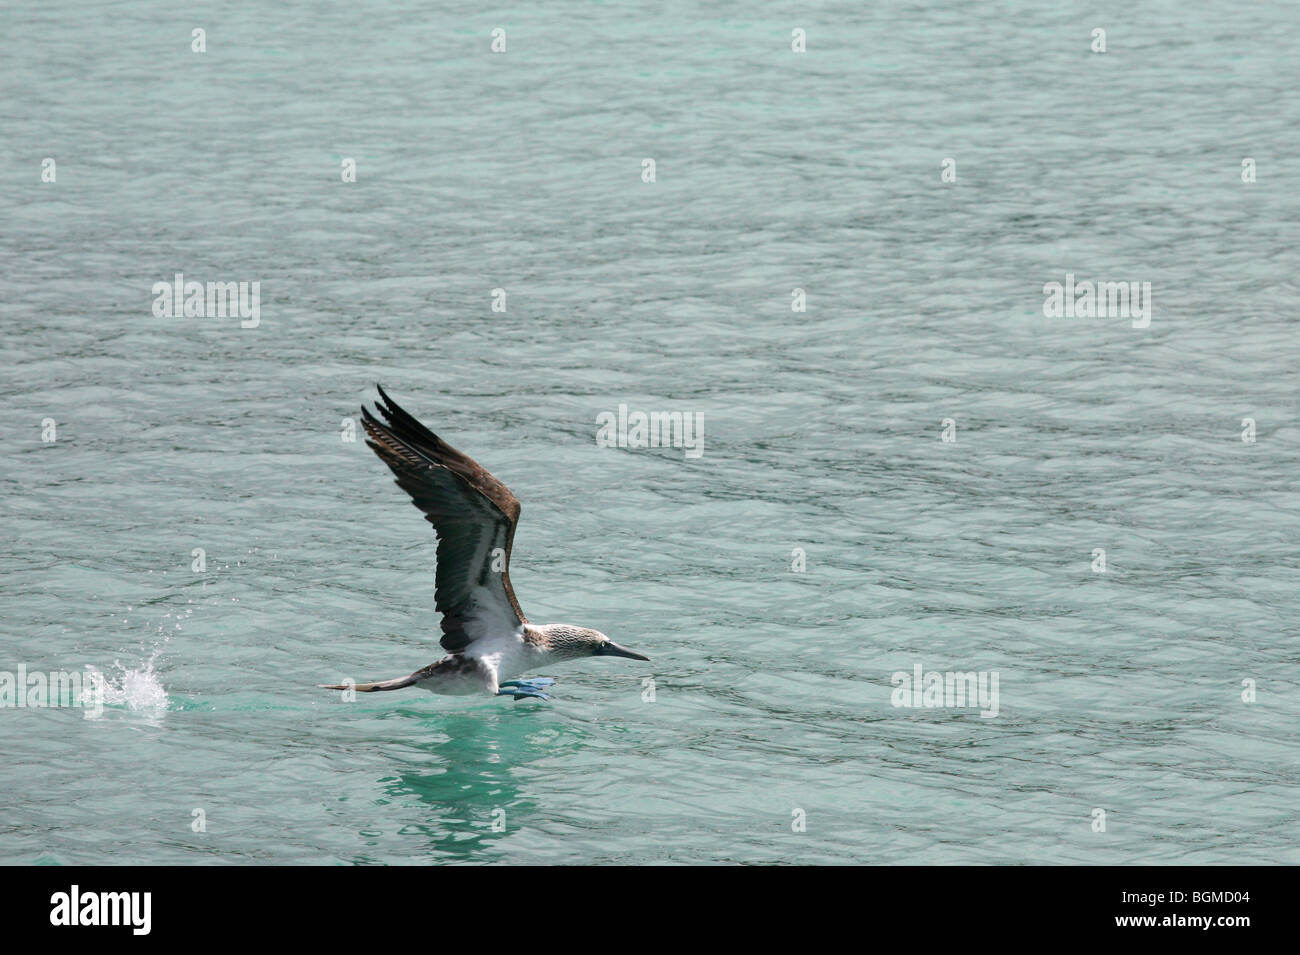 Blue-footed Booby (Sula nebouxii excisa) taking off from sea, Puerto Ayora on Santa Cruz Island, Galápagos - Stock Image